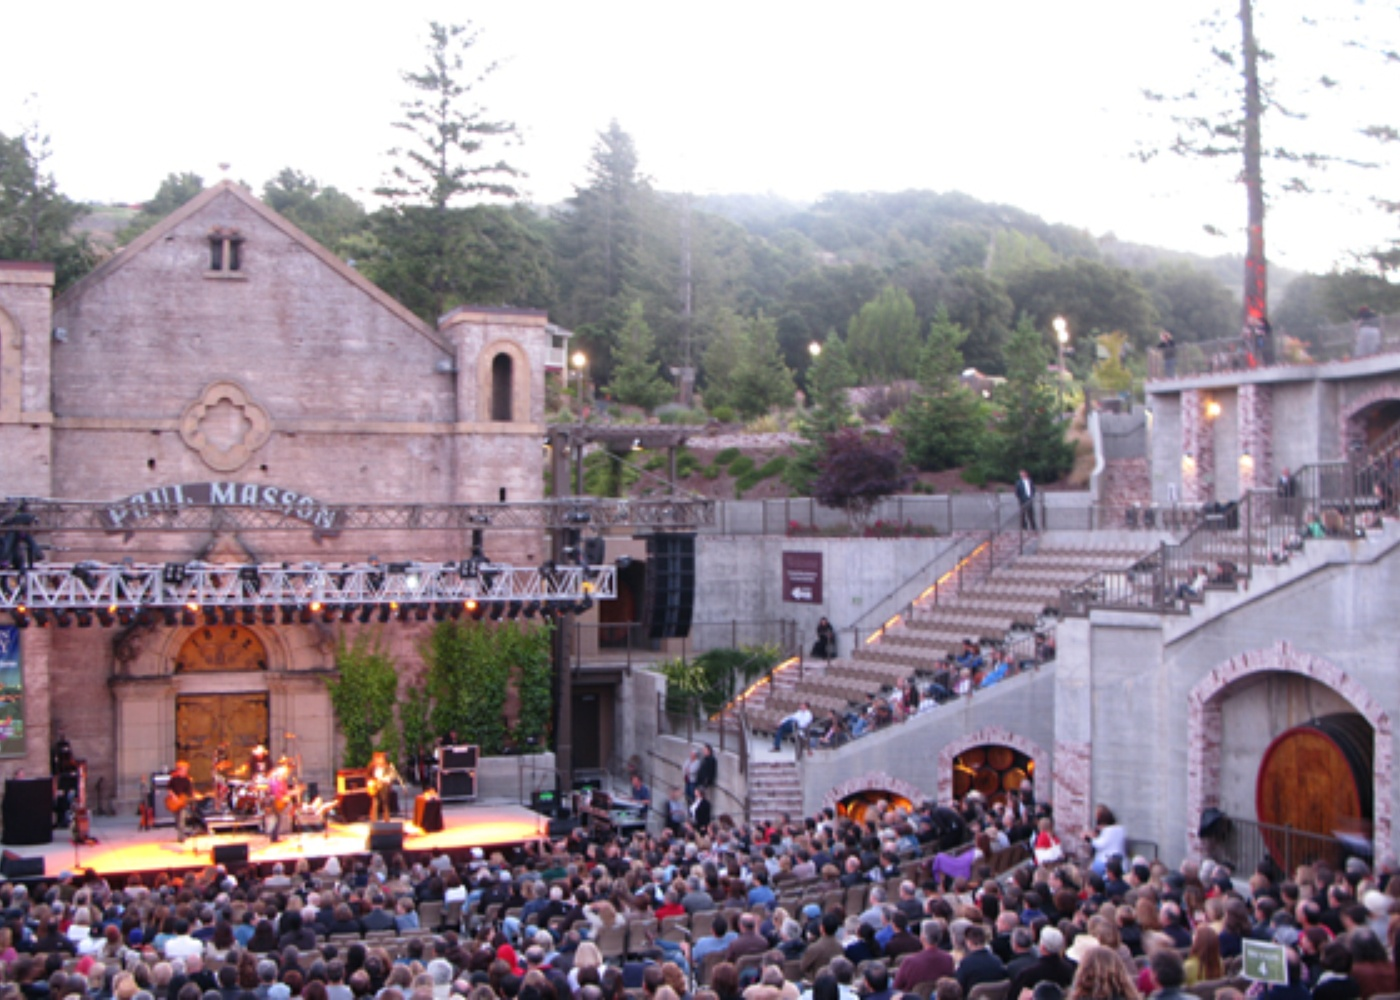 Mountain Winery Concert Series